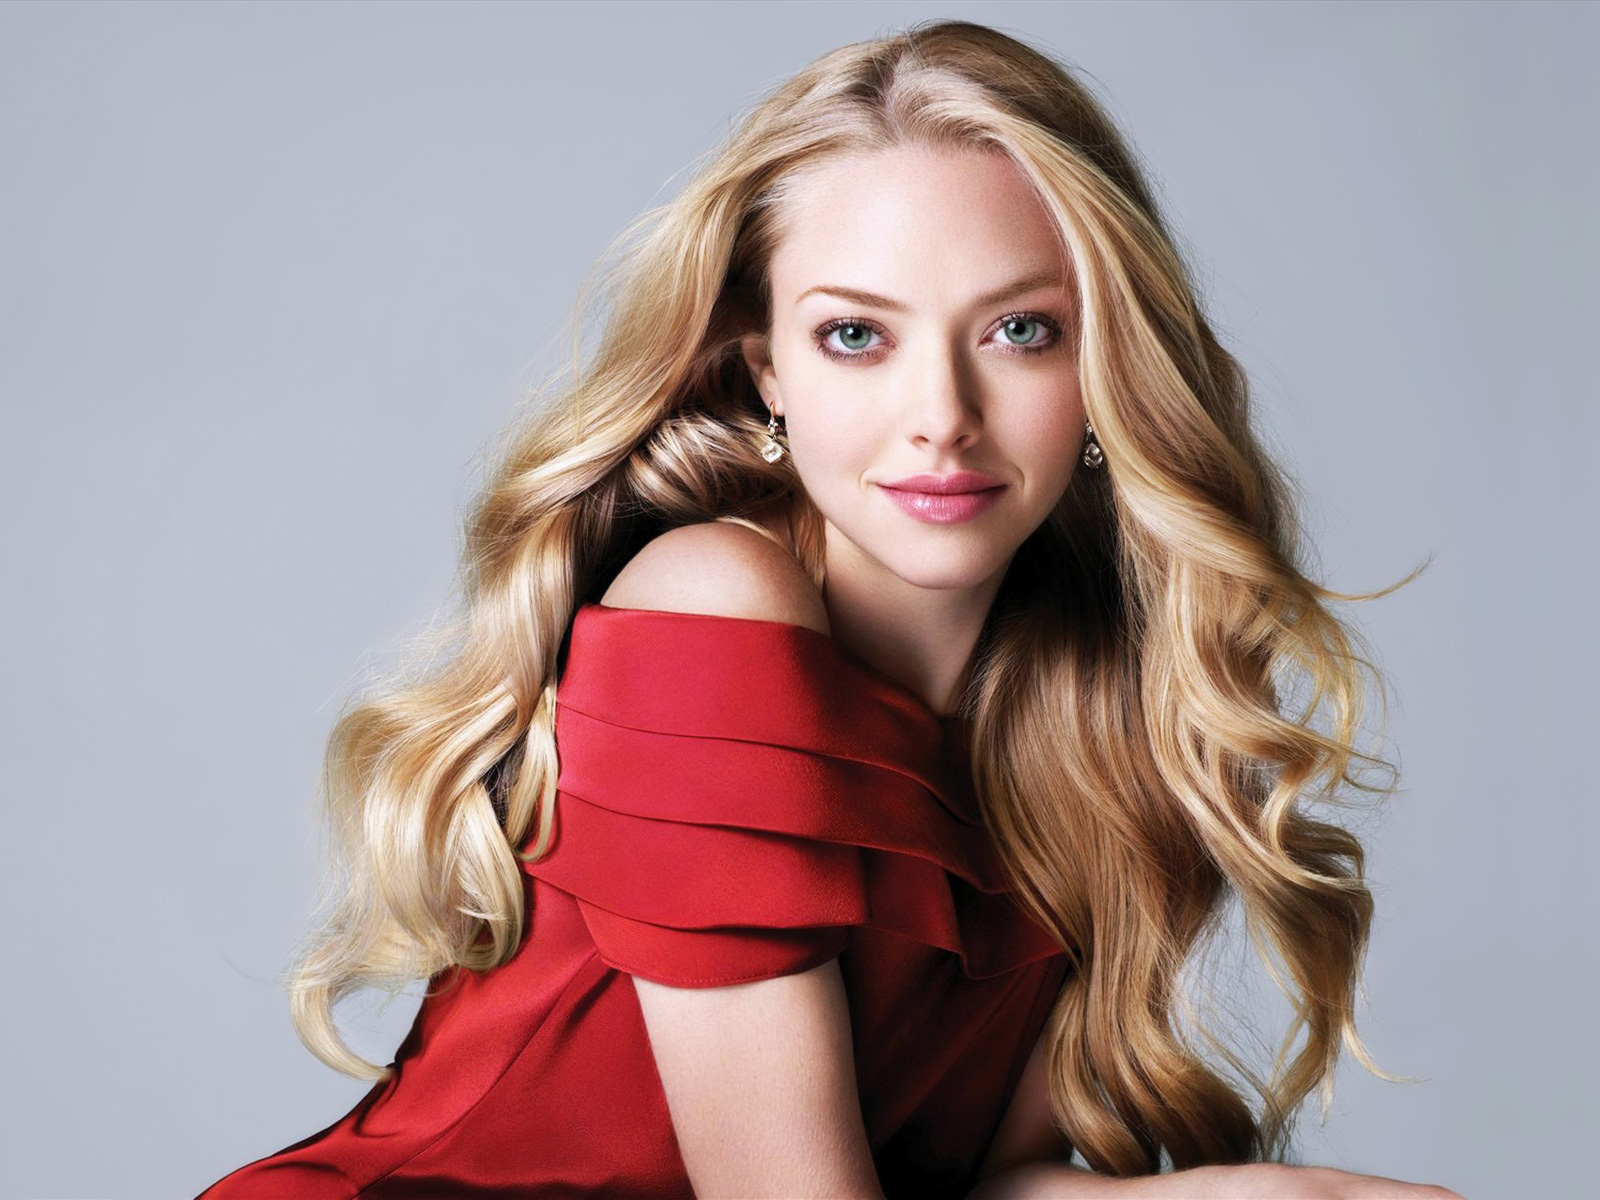 Amanda Seyfried Beautiful 1212.66 Kb